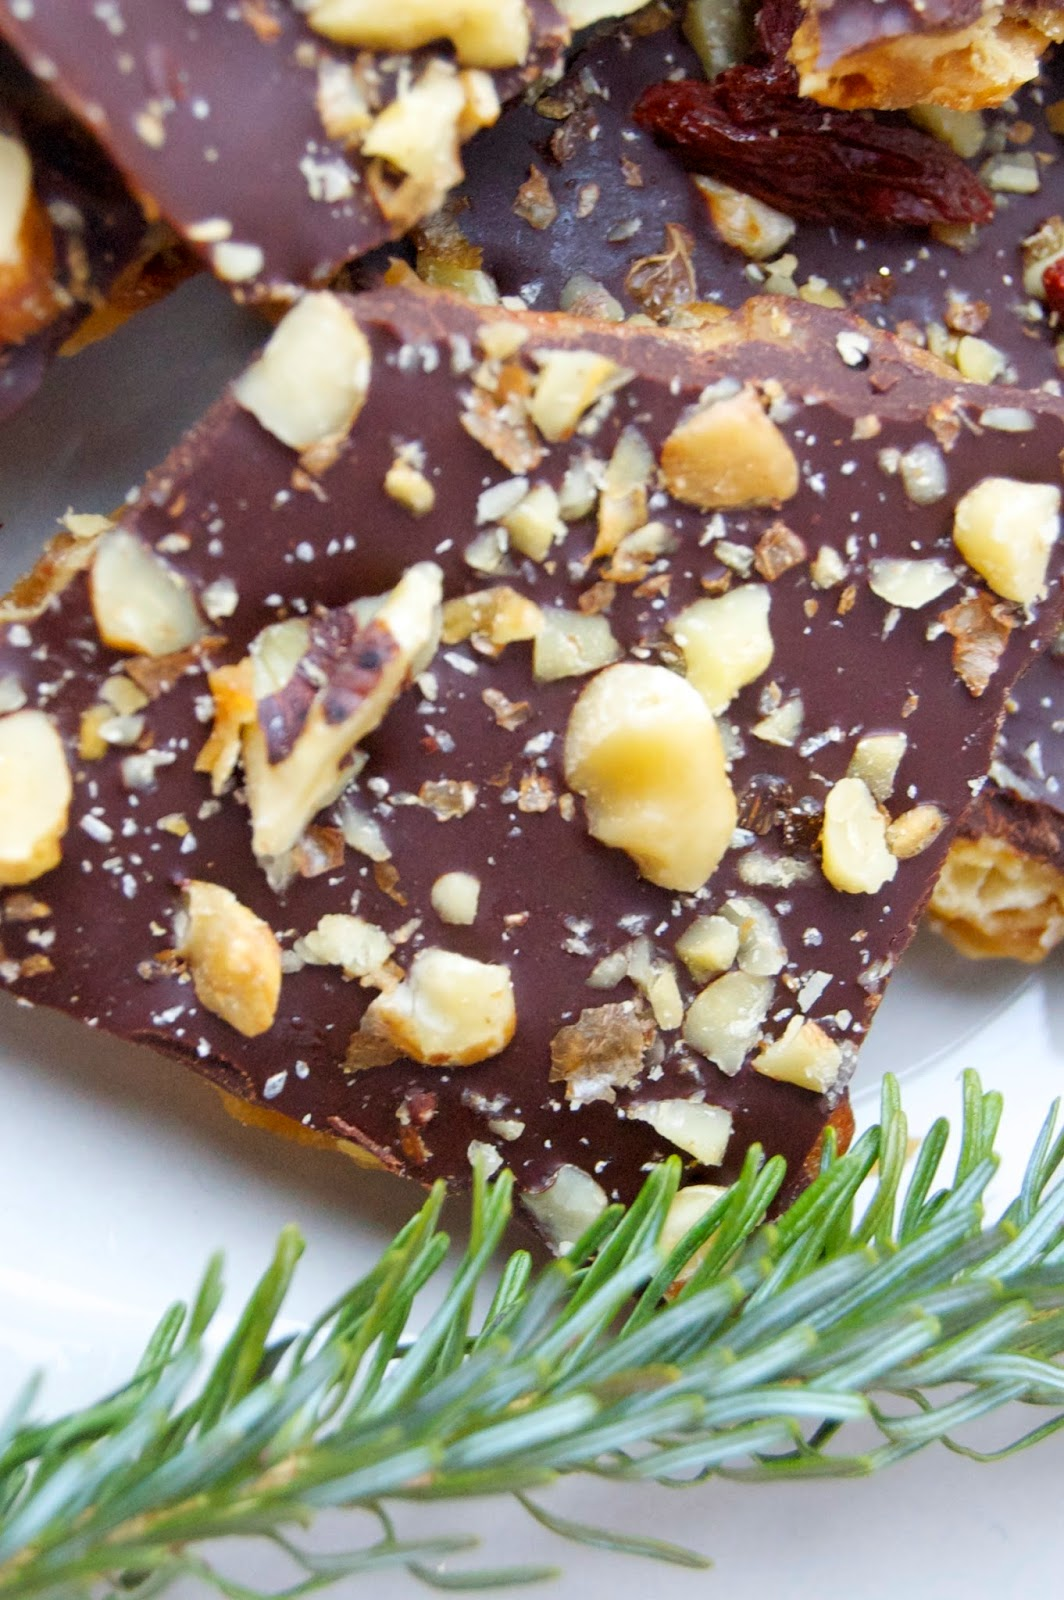 Angie's Brittle - Happy Holidays | www.kettlercuisine.com